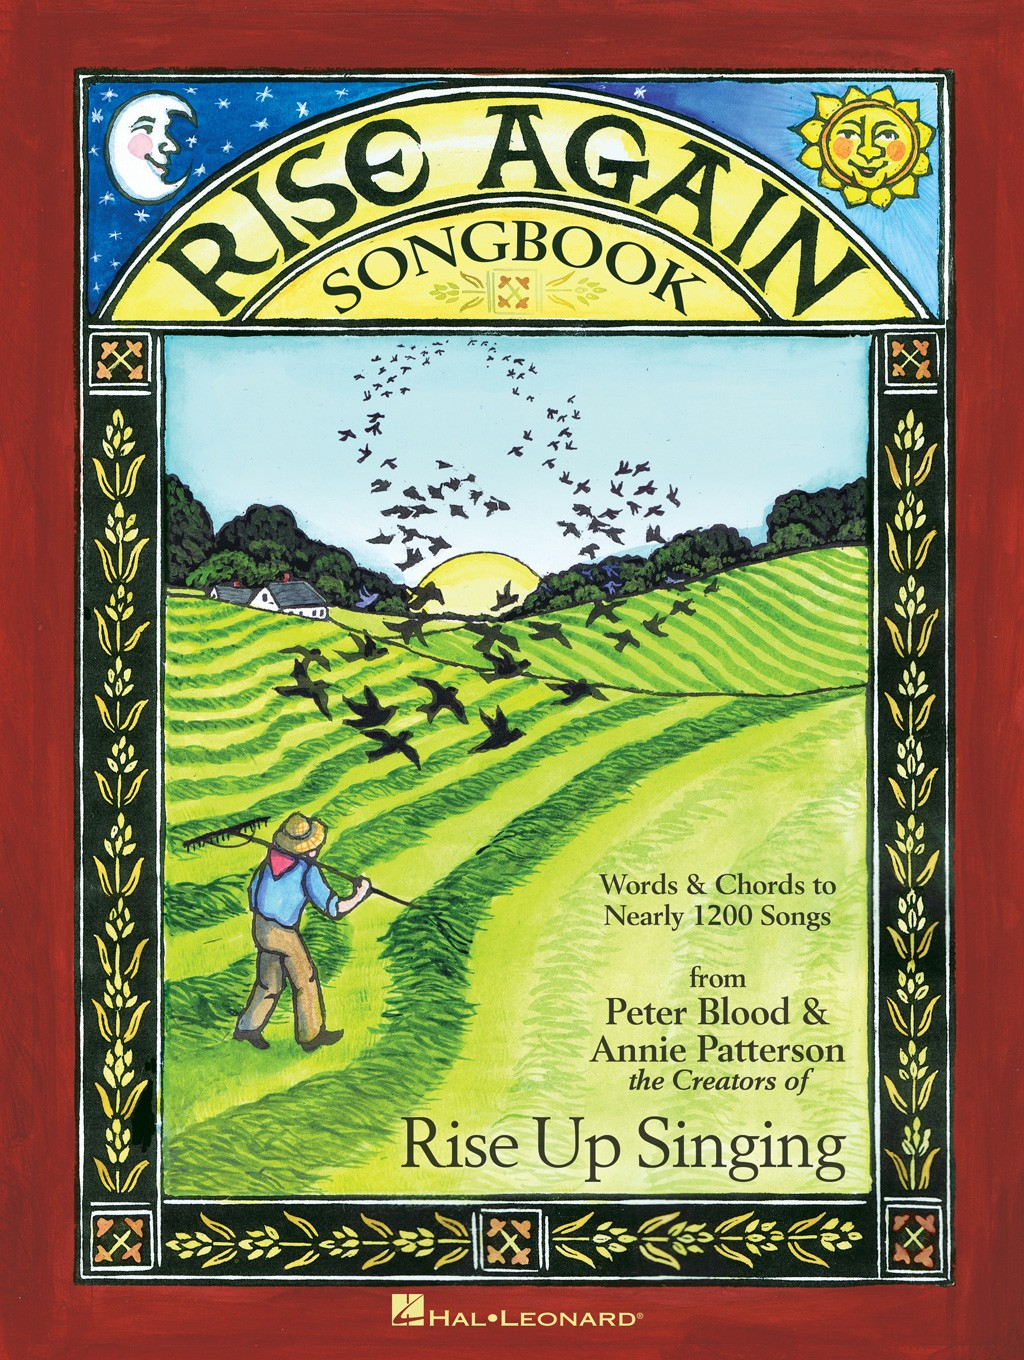 Famed songbook rise up singing gets a sequel rise again music rise again songbook edited by peter blood and annie patterson hal leonard corporation 304 pages 2750 fandeluxe Gallery